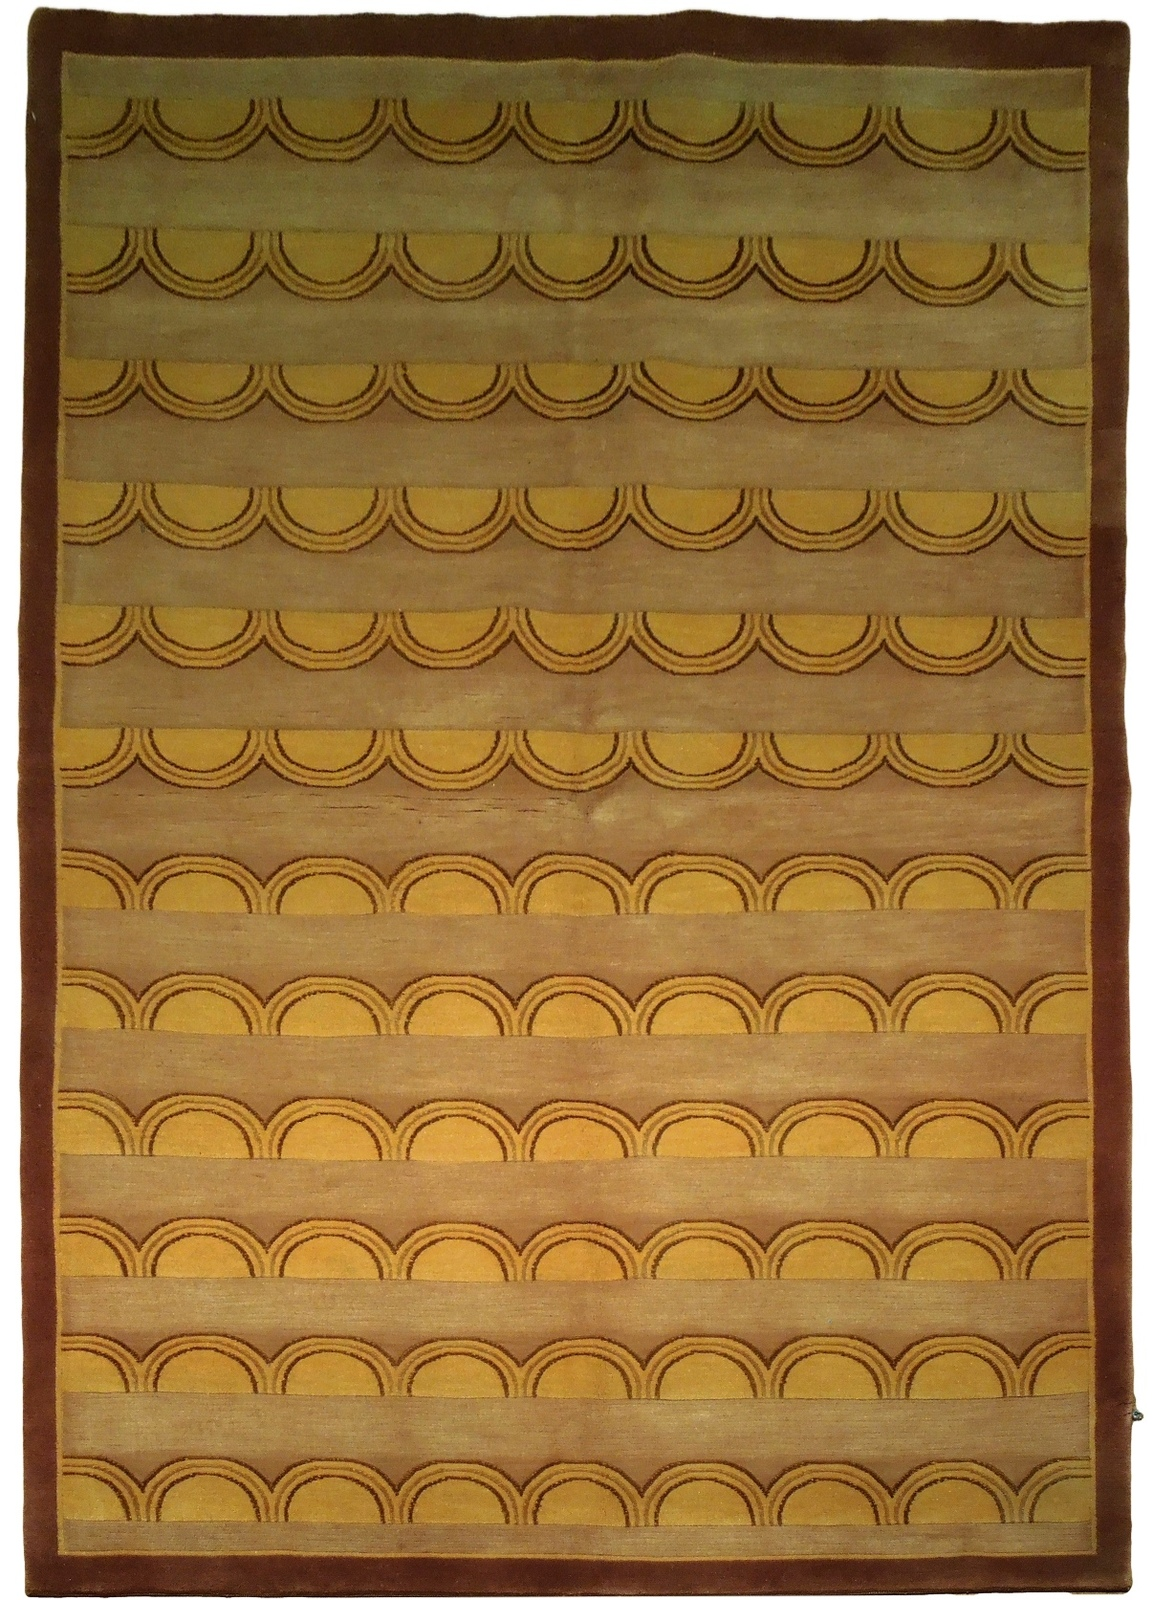 Beige Rug 5 x 8 Wool & Silk Centered Waves Nepalese Hand-Knotted Rug